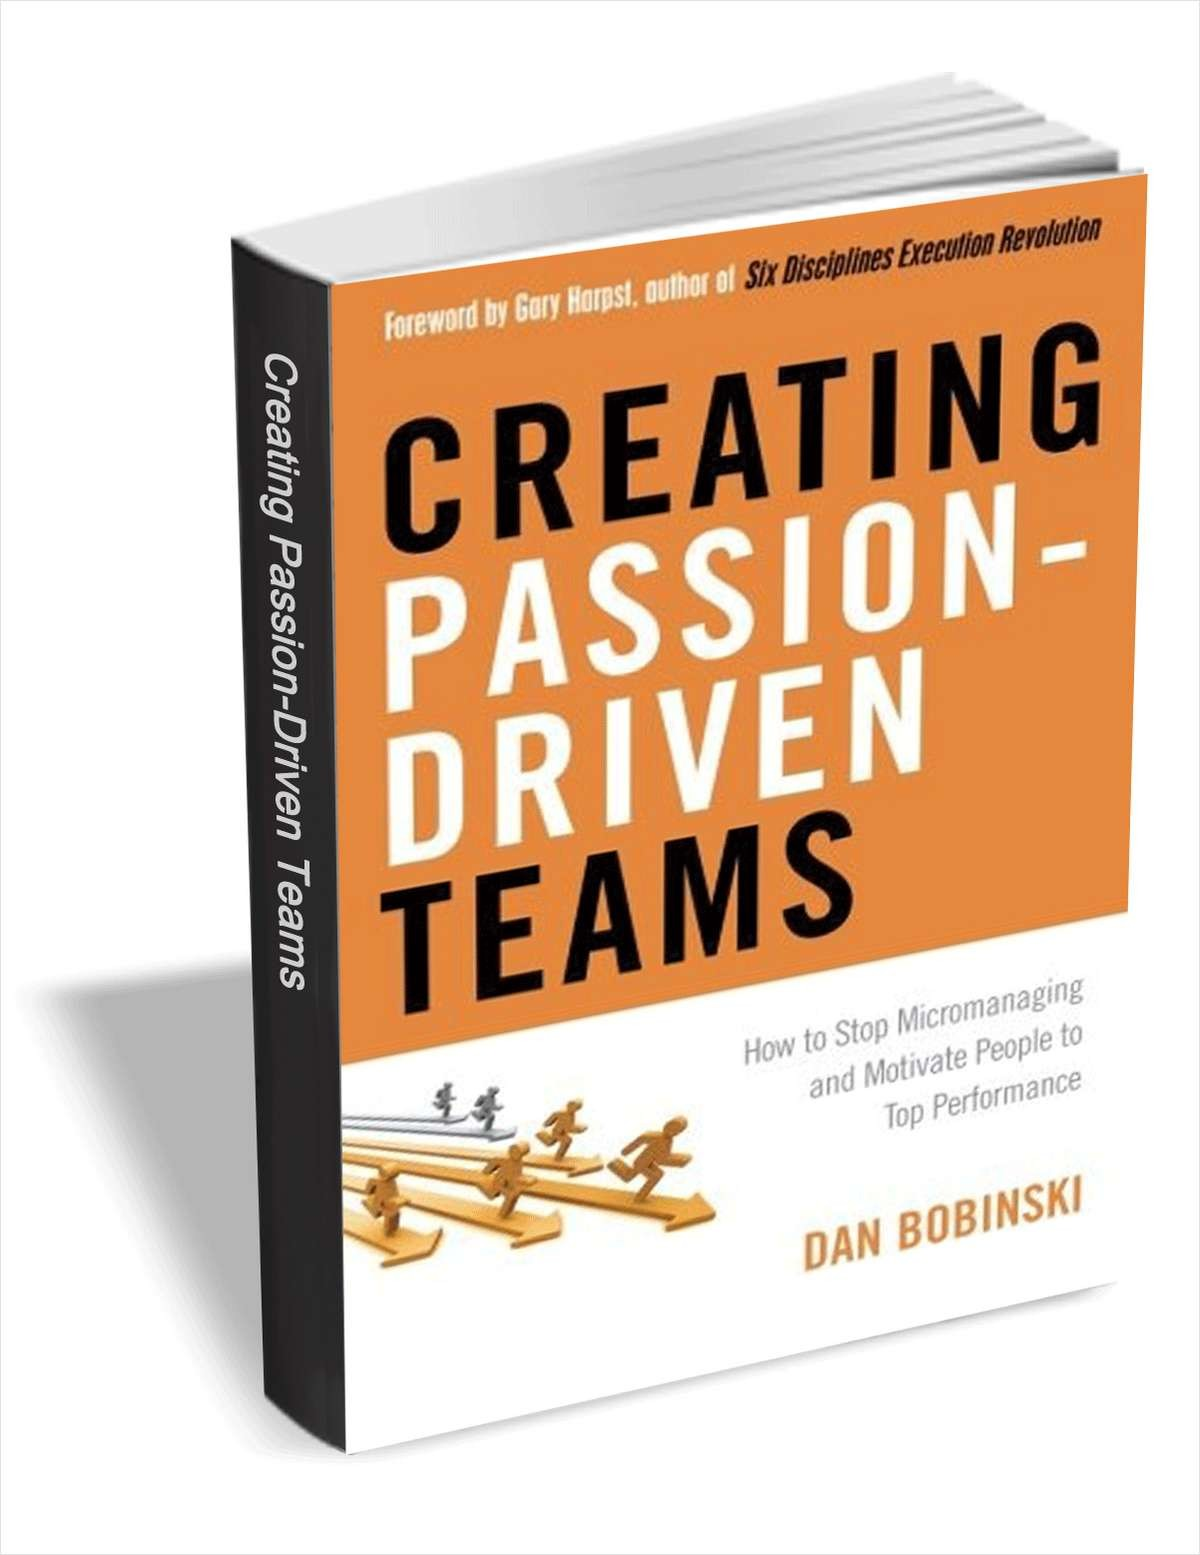 Learn about creating passion driven teams with this free ebook a youll learn the principles and methods top managers use to develop passionate engaged employees who are dedicated to success youll be able to fandeluxe Images